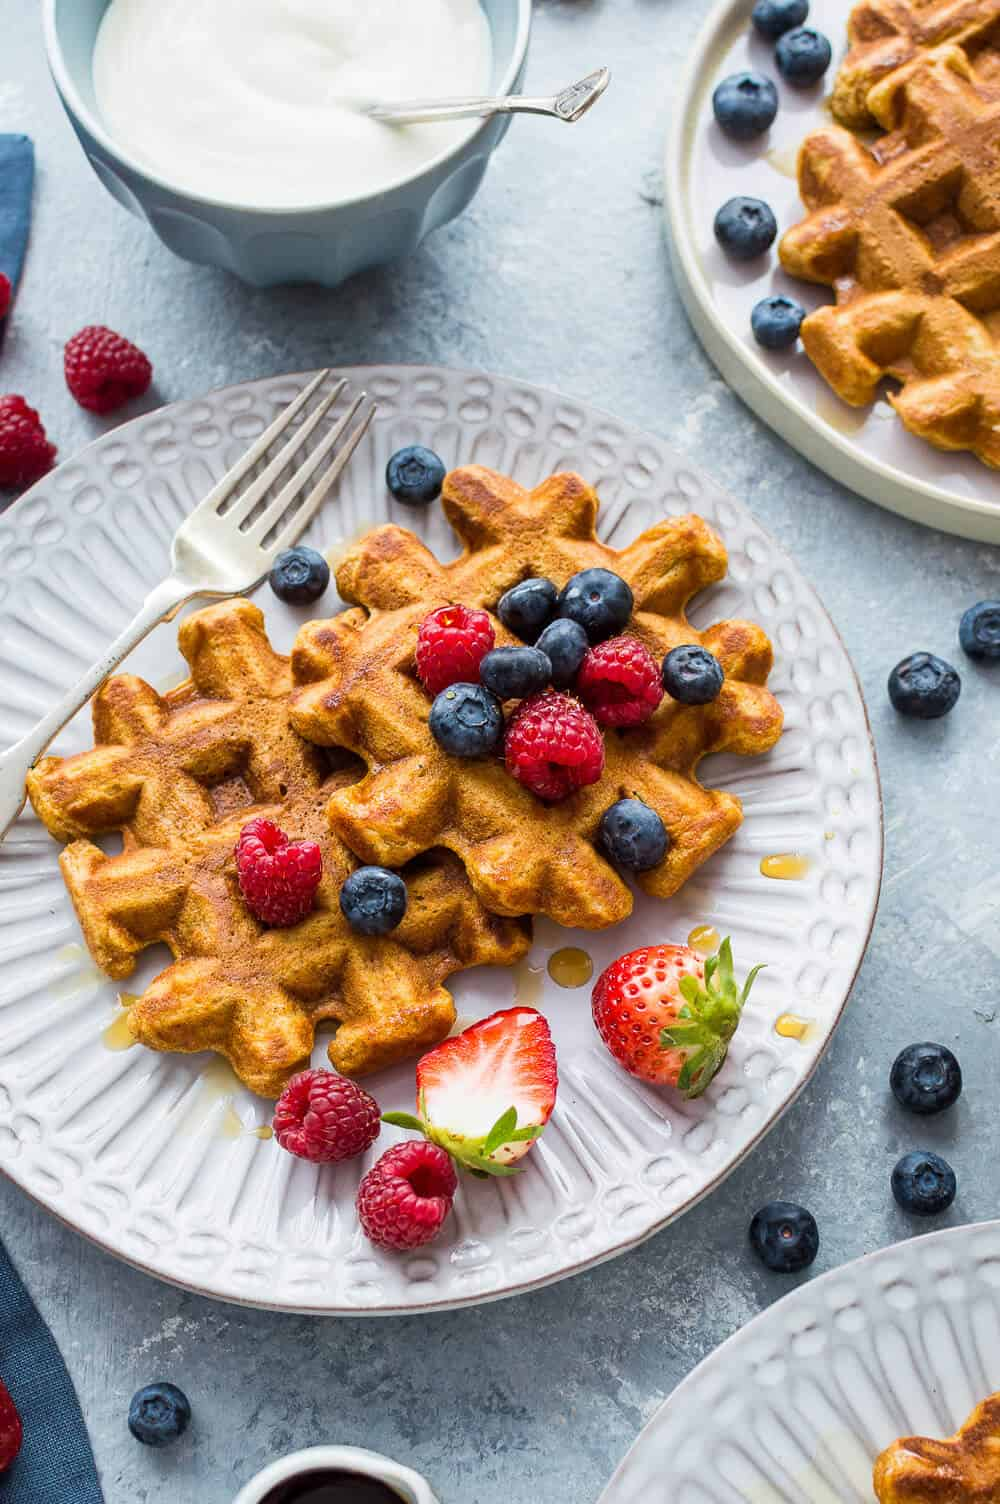 Healthier sweet potato waffles on a white plate with berries and maple syrup.